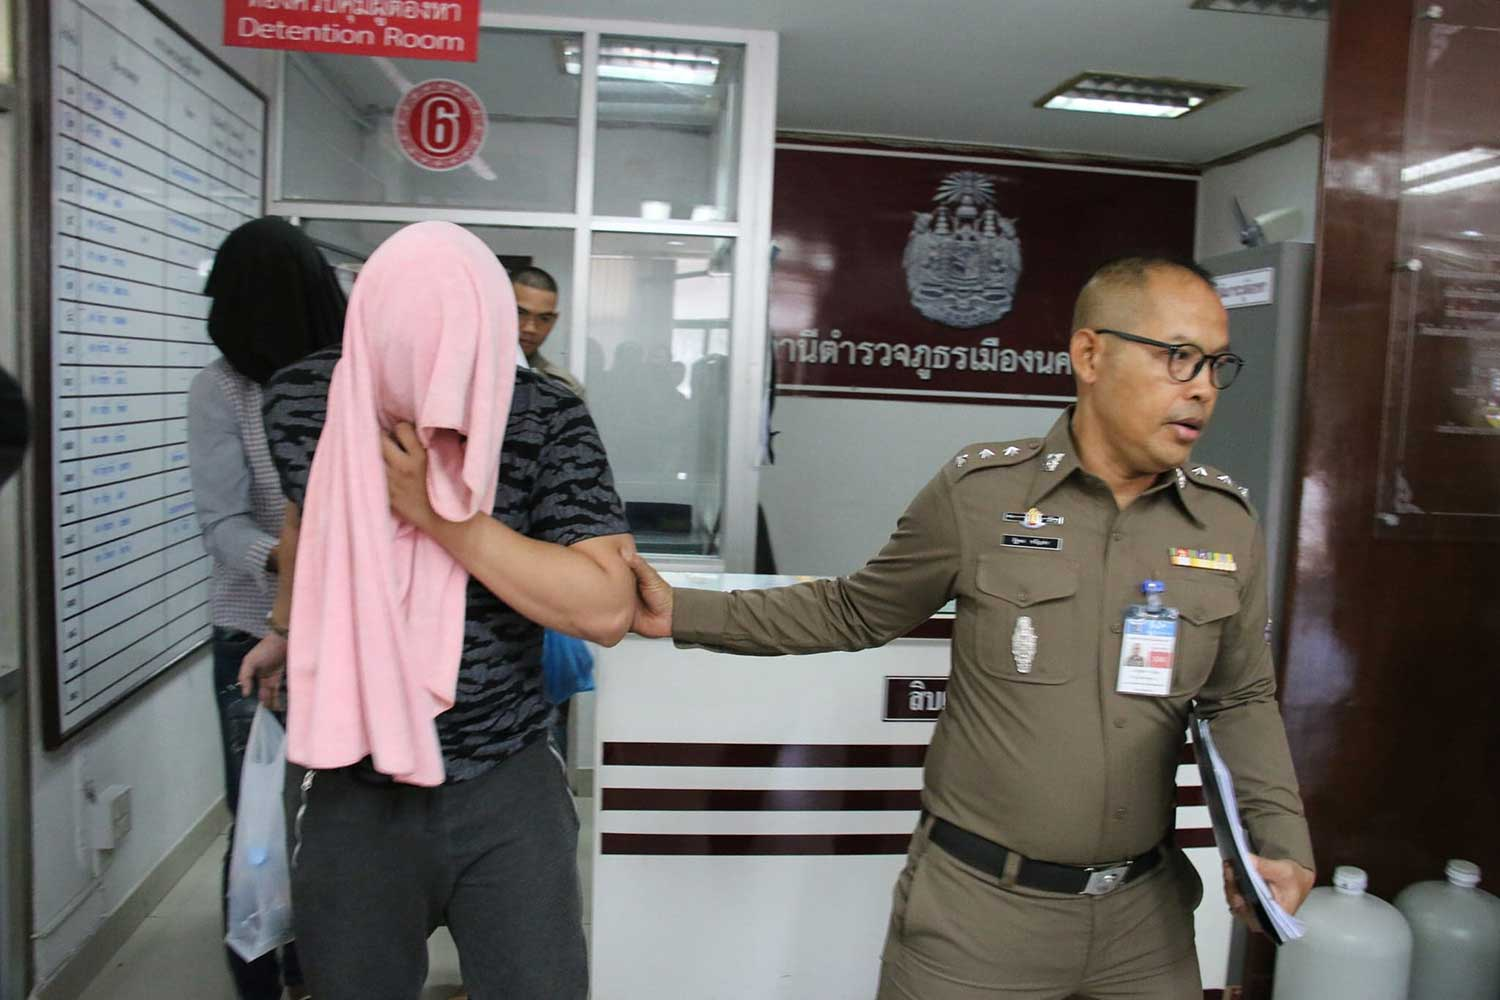 Natthaphol Thavornphibun, owner of Ban Phi Nat tutorial school in Nakhon Sawan, his wife and his mother-in-law, are taken to Nakhon Sawan prison after being interrogated over the fatal beating of student Thapakorn Sapsin, 15, at Muang district police station in June last year. (File photo: Chalit Poomrueng)